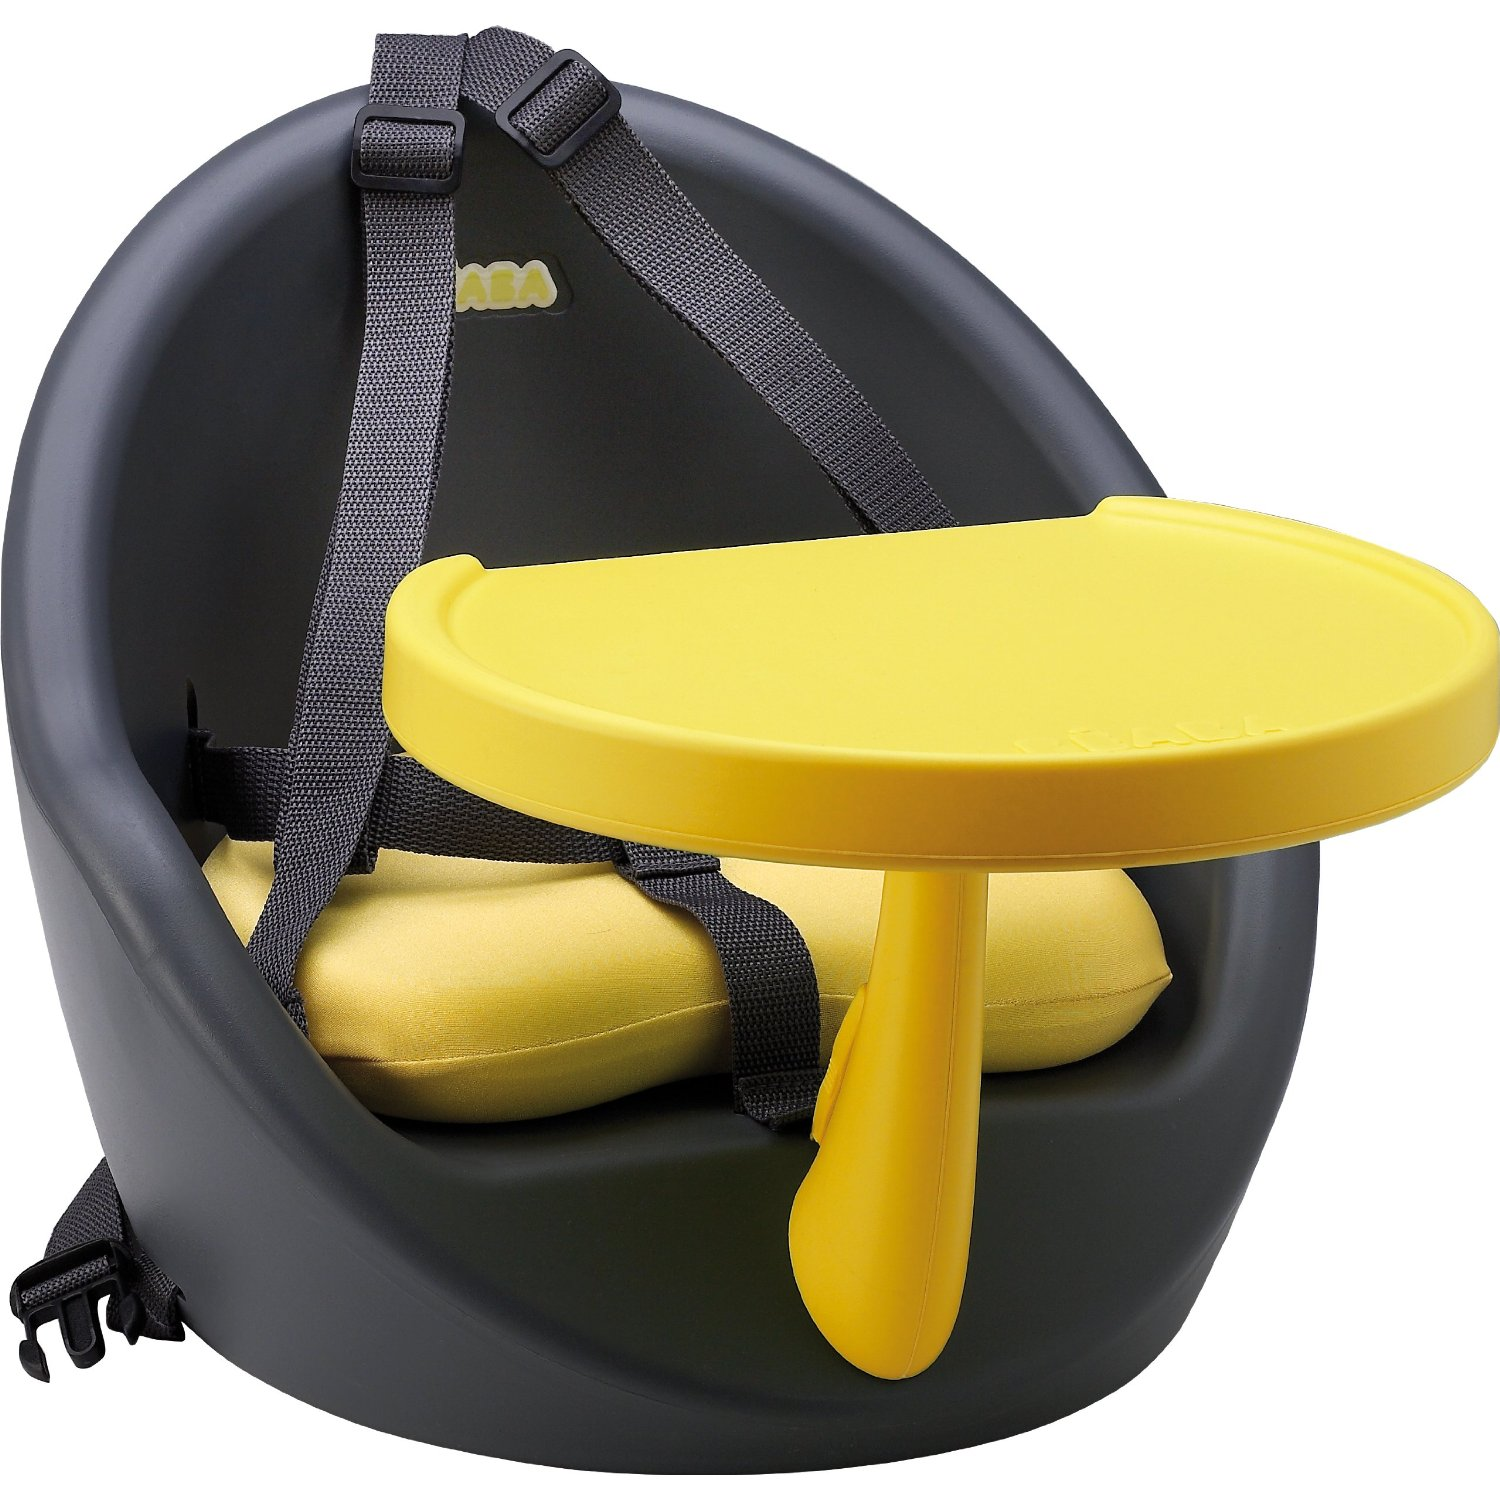 toddler high chair booster seat picnic time folding beaba baby babyboost travel